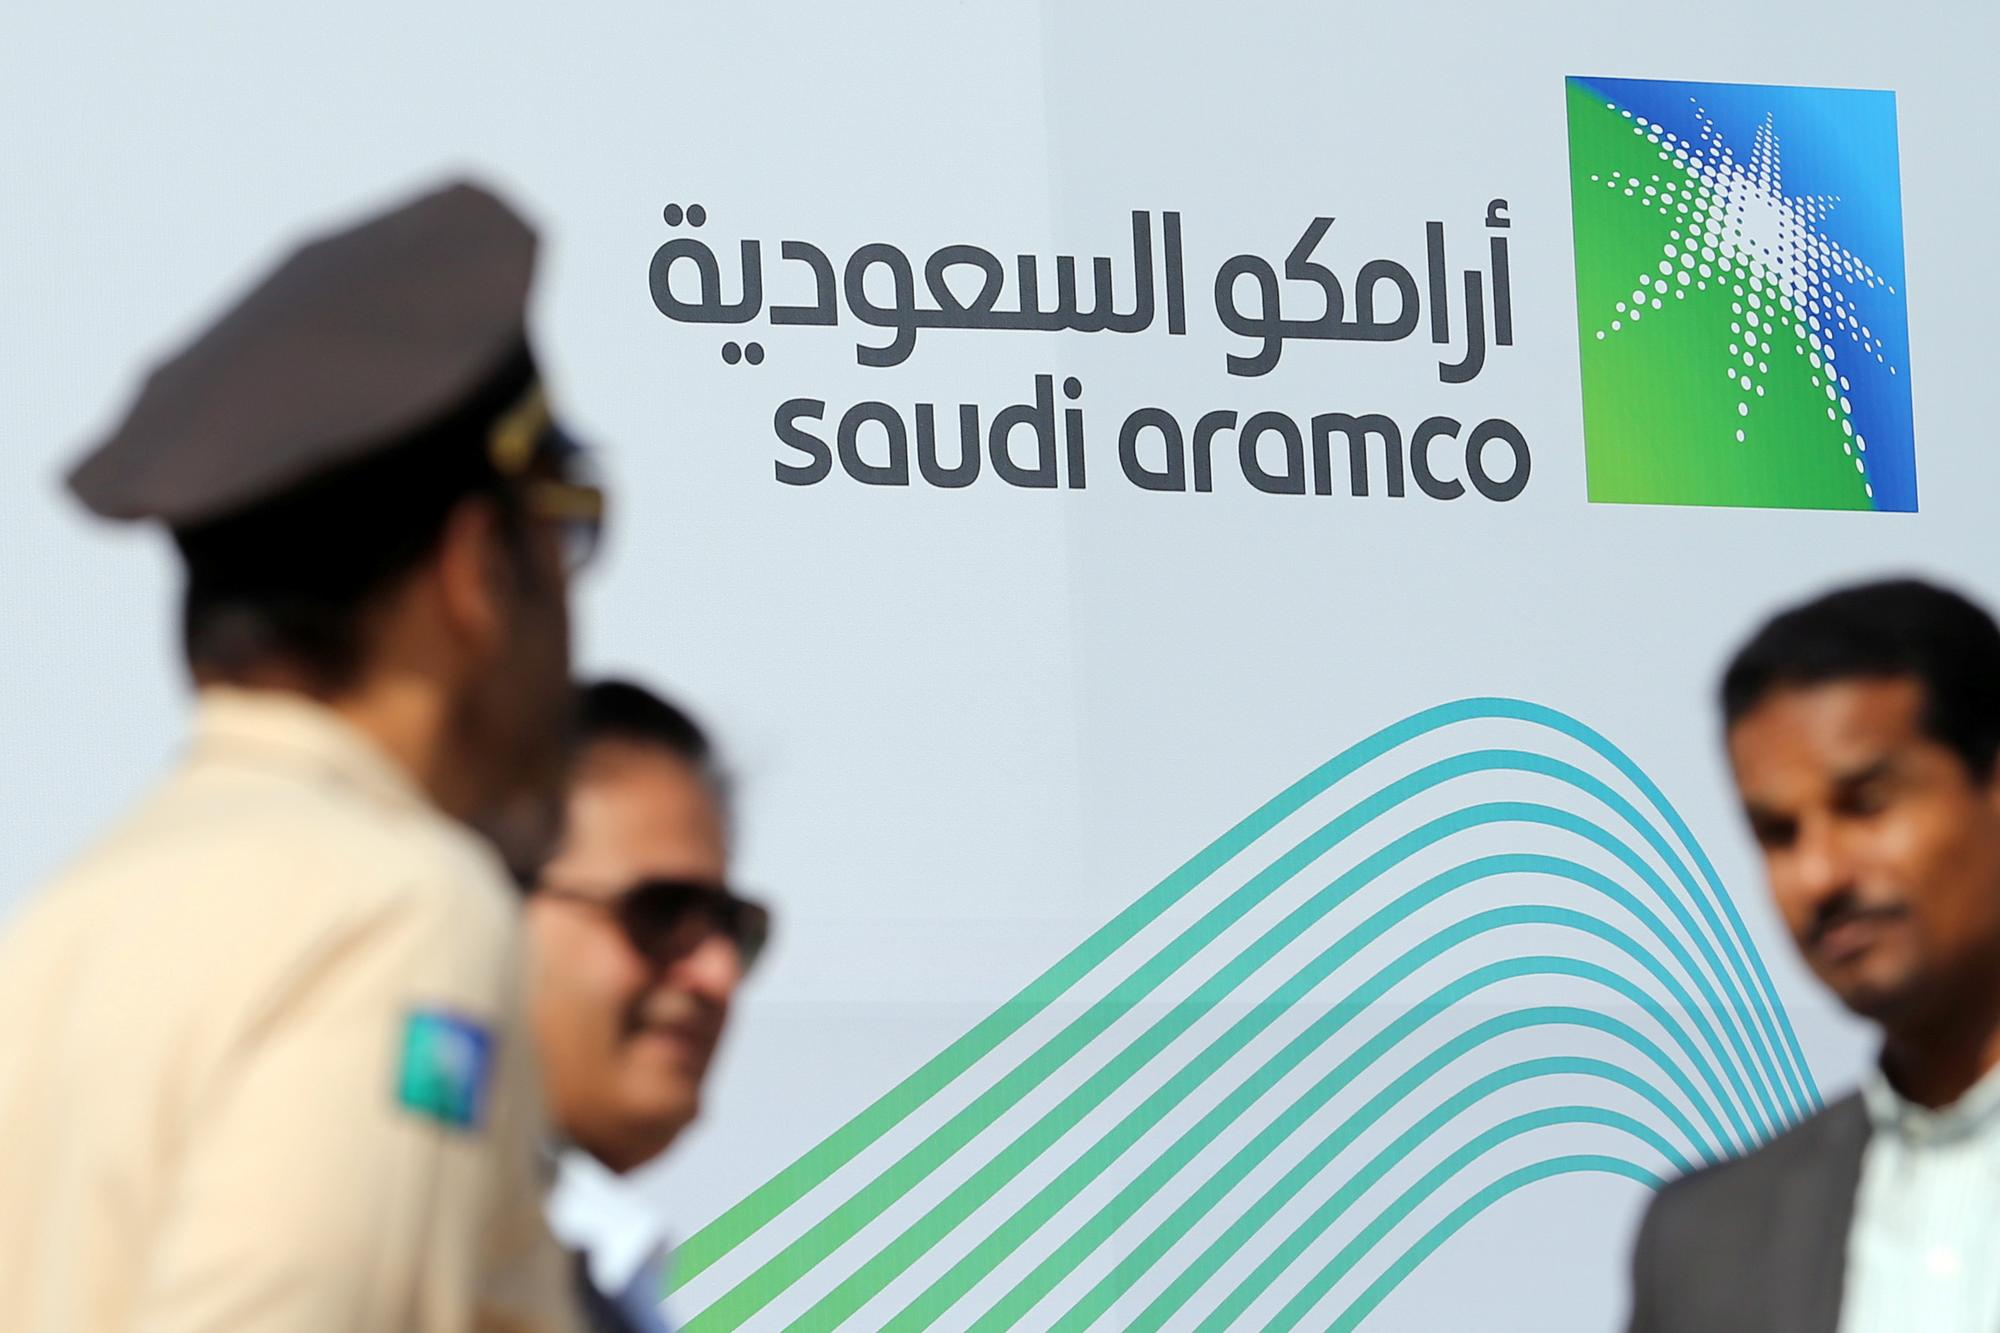 Saudi Aramco cuts hundreds of jobs amid oil market downturn, sources say